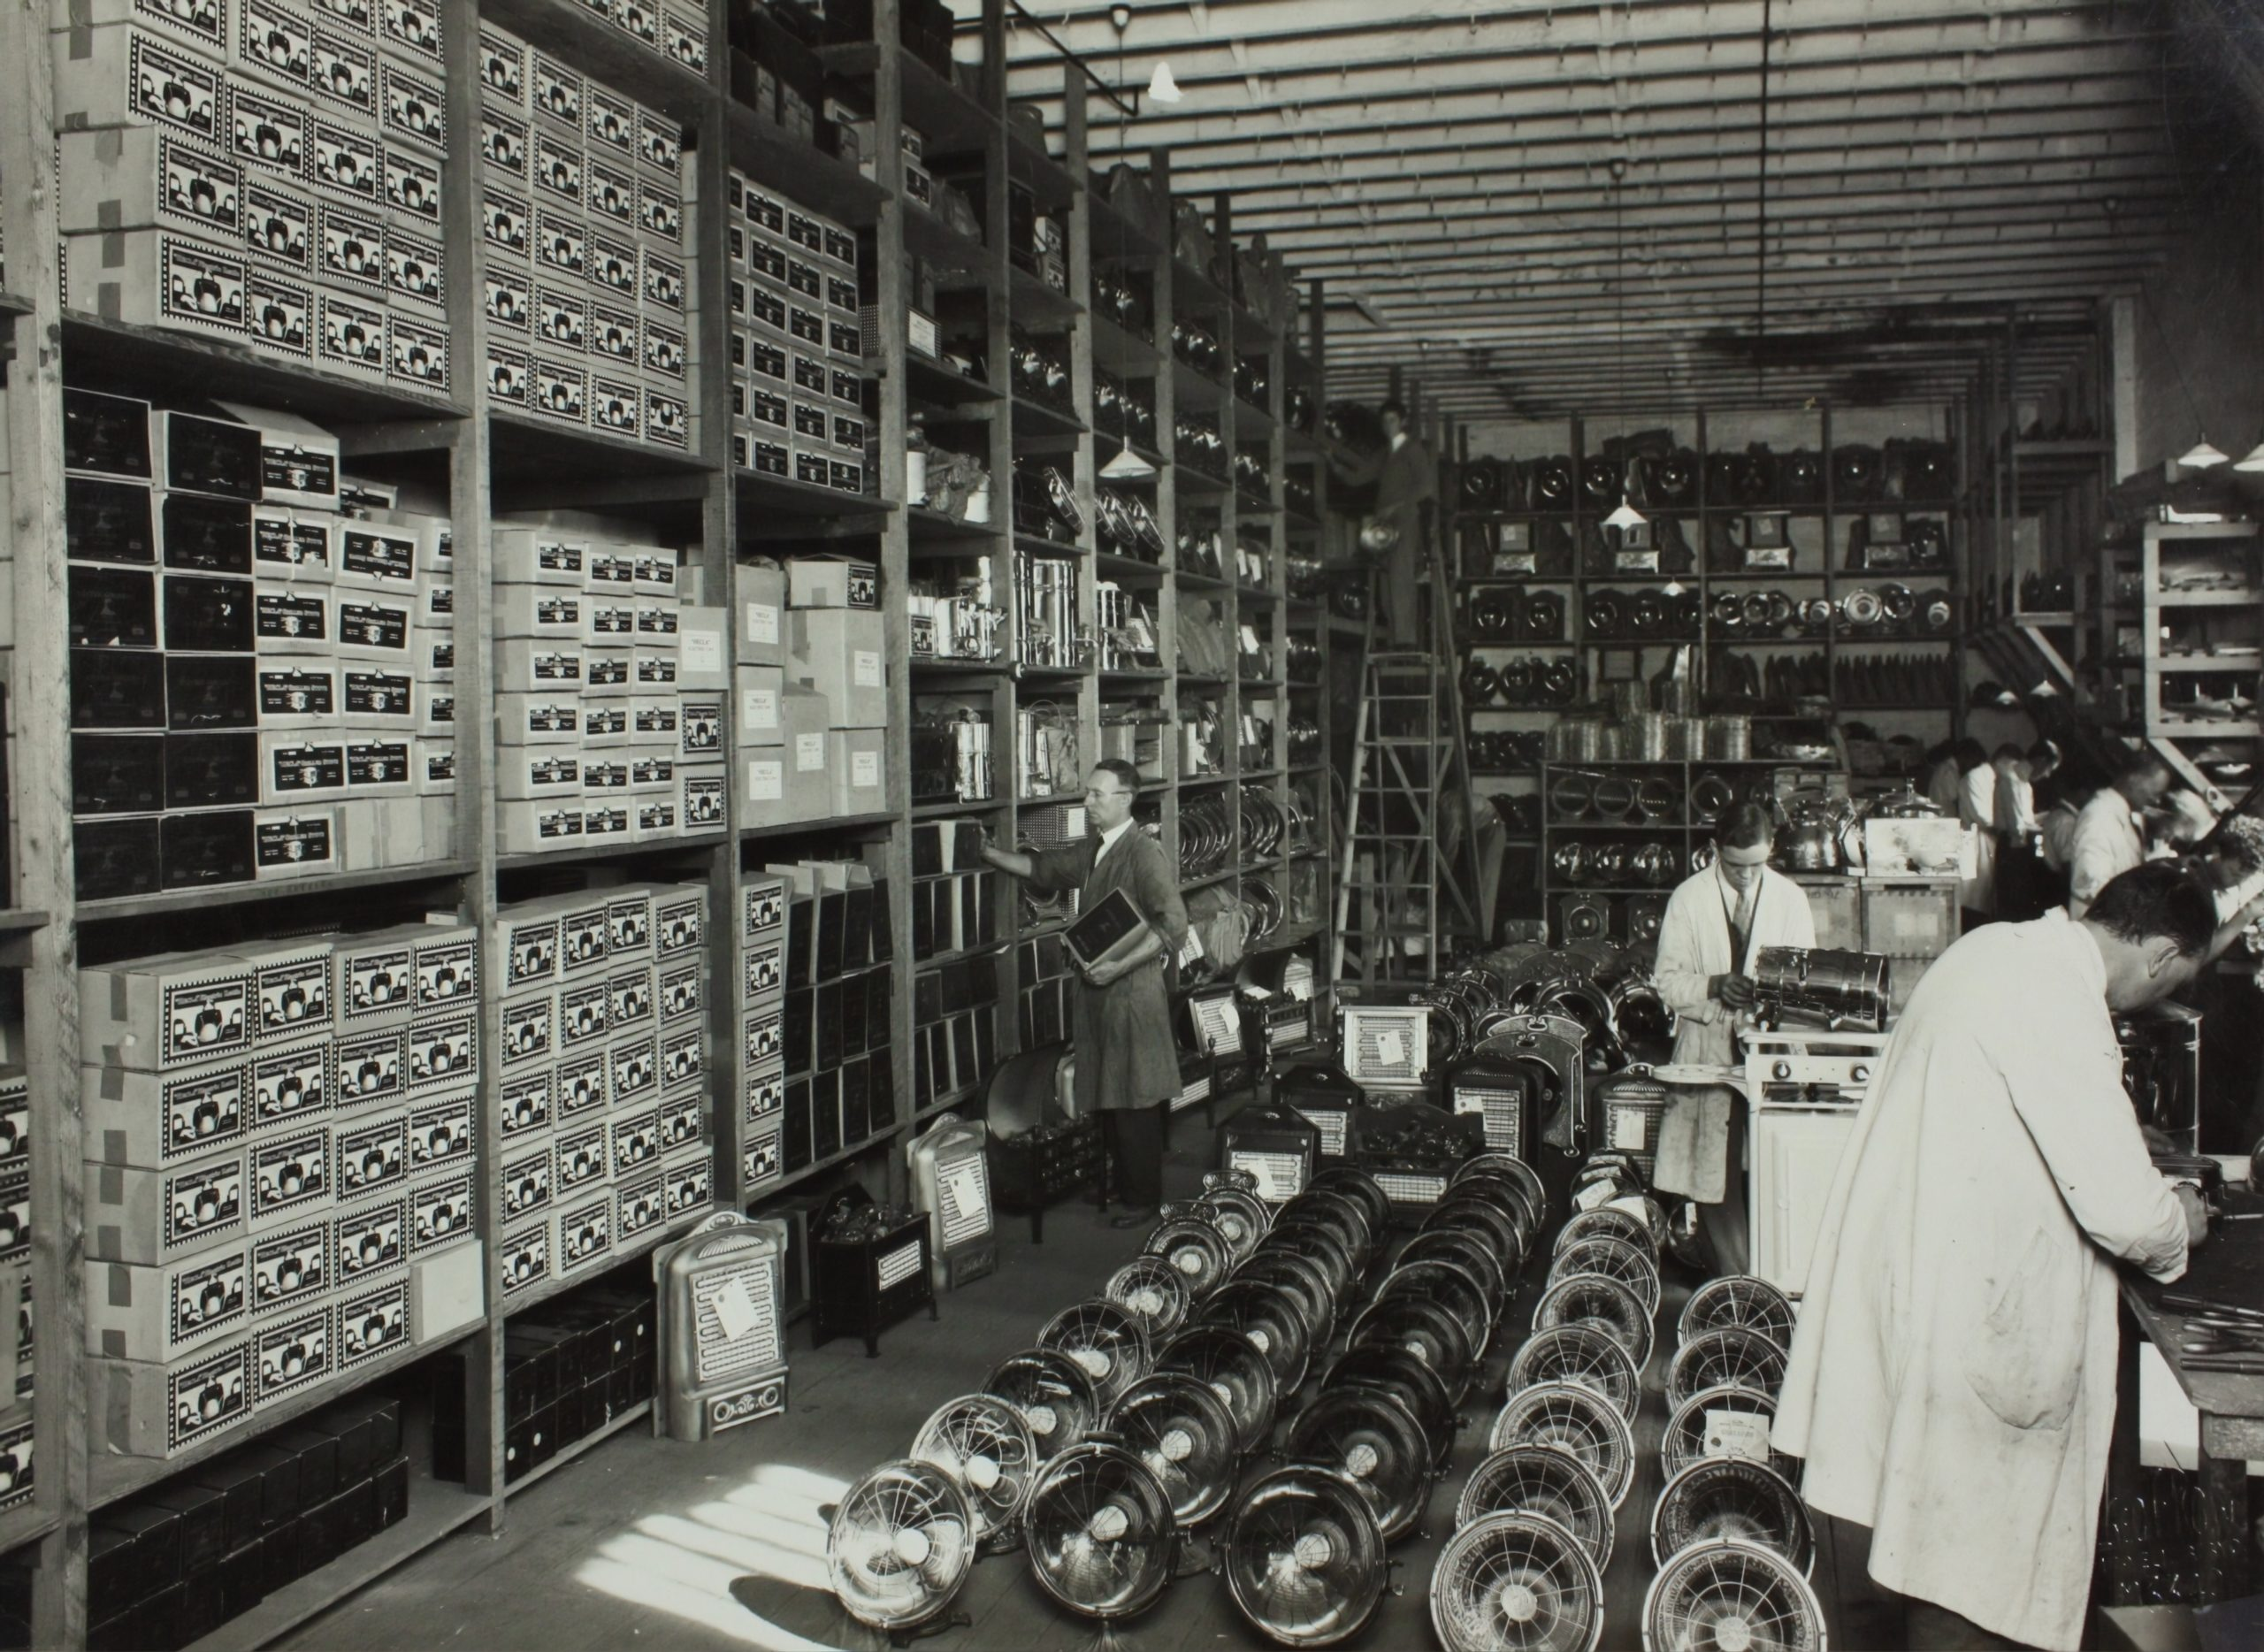 A Live Event Take on Inventory Management